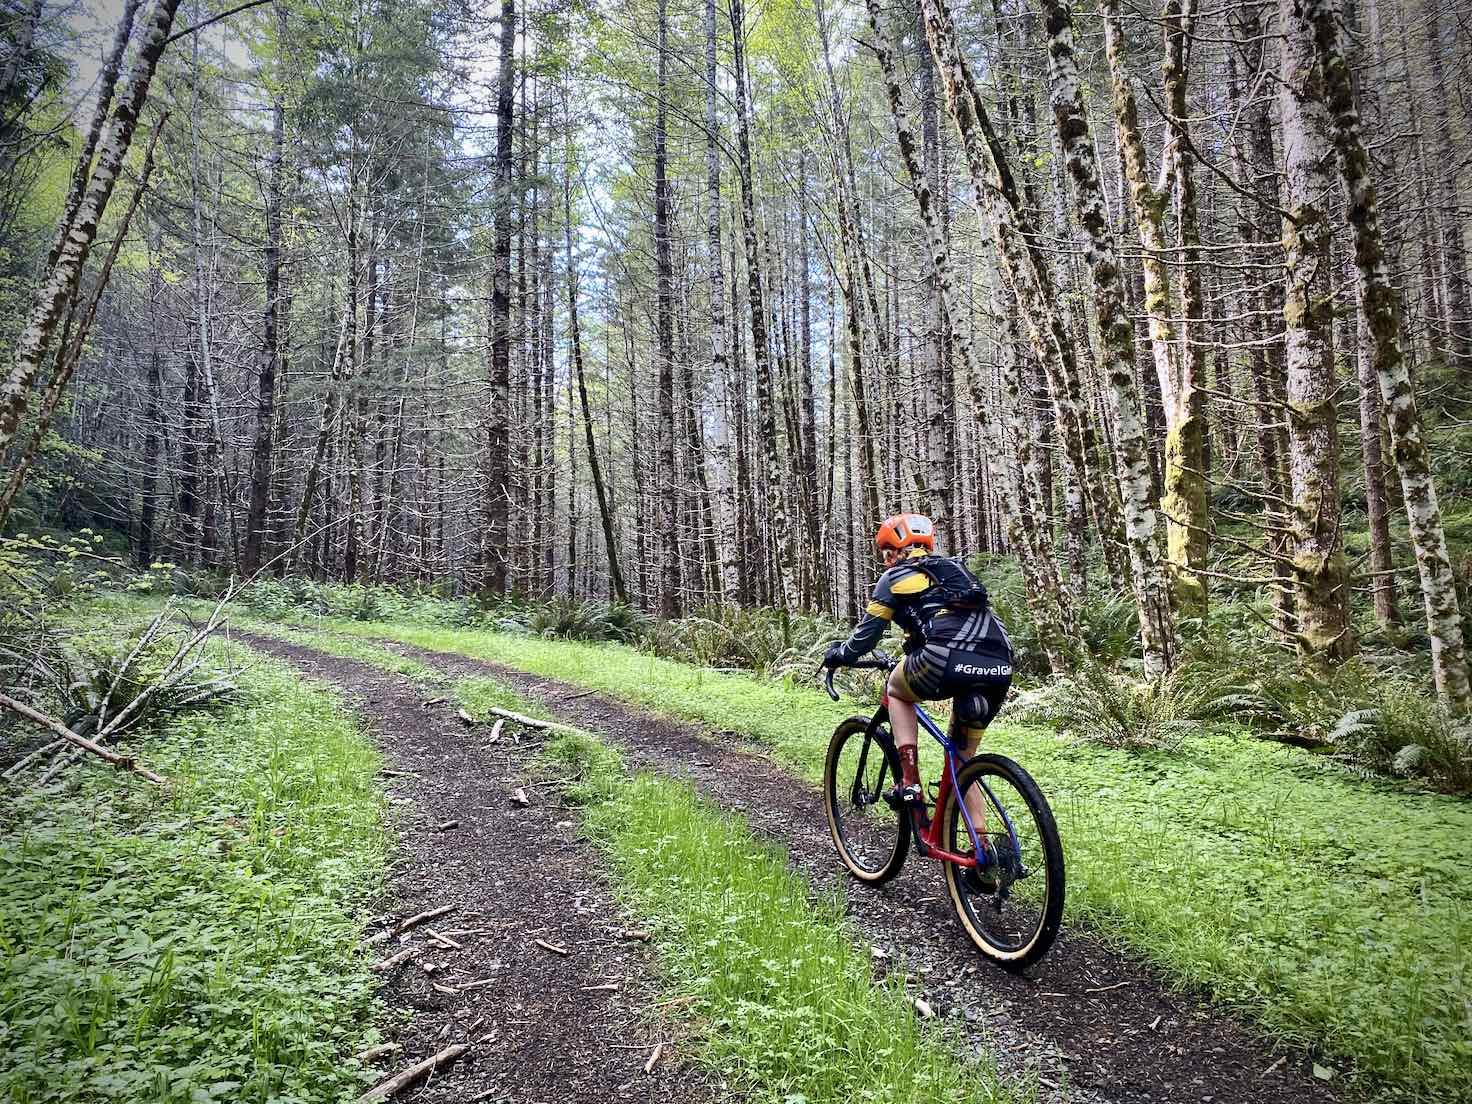 Woman gravel cyclist riding a primitive gravel road deep in the Coast Range of mountains in Oregon.